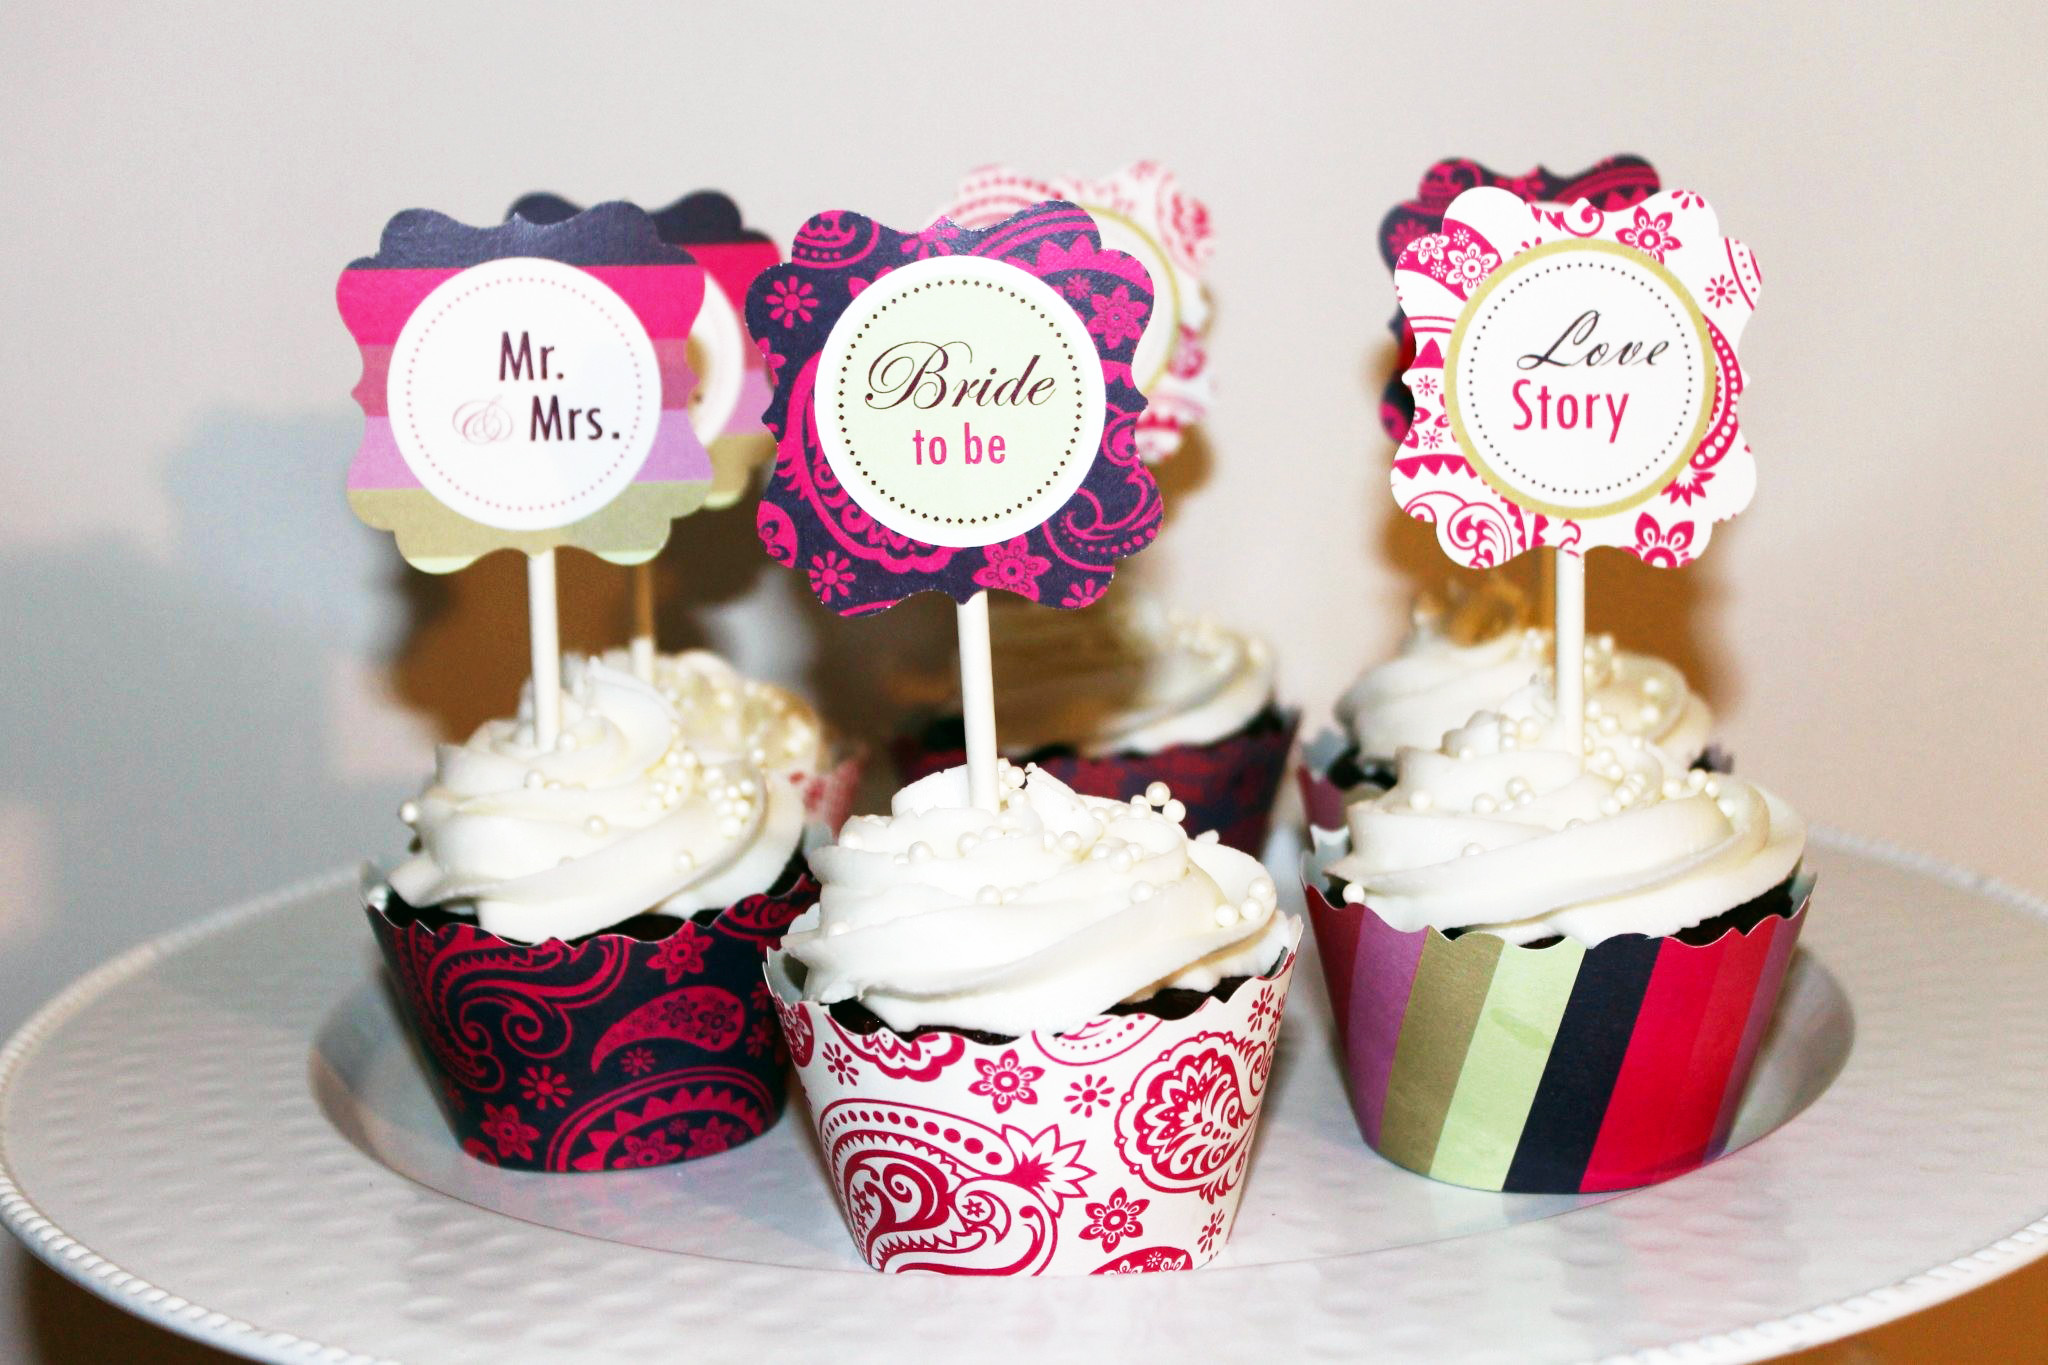 home popular gift cheap most small ideas on bridal wedding fabulous shower homemade